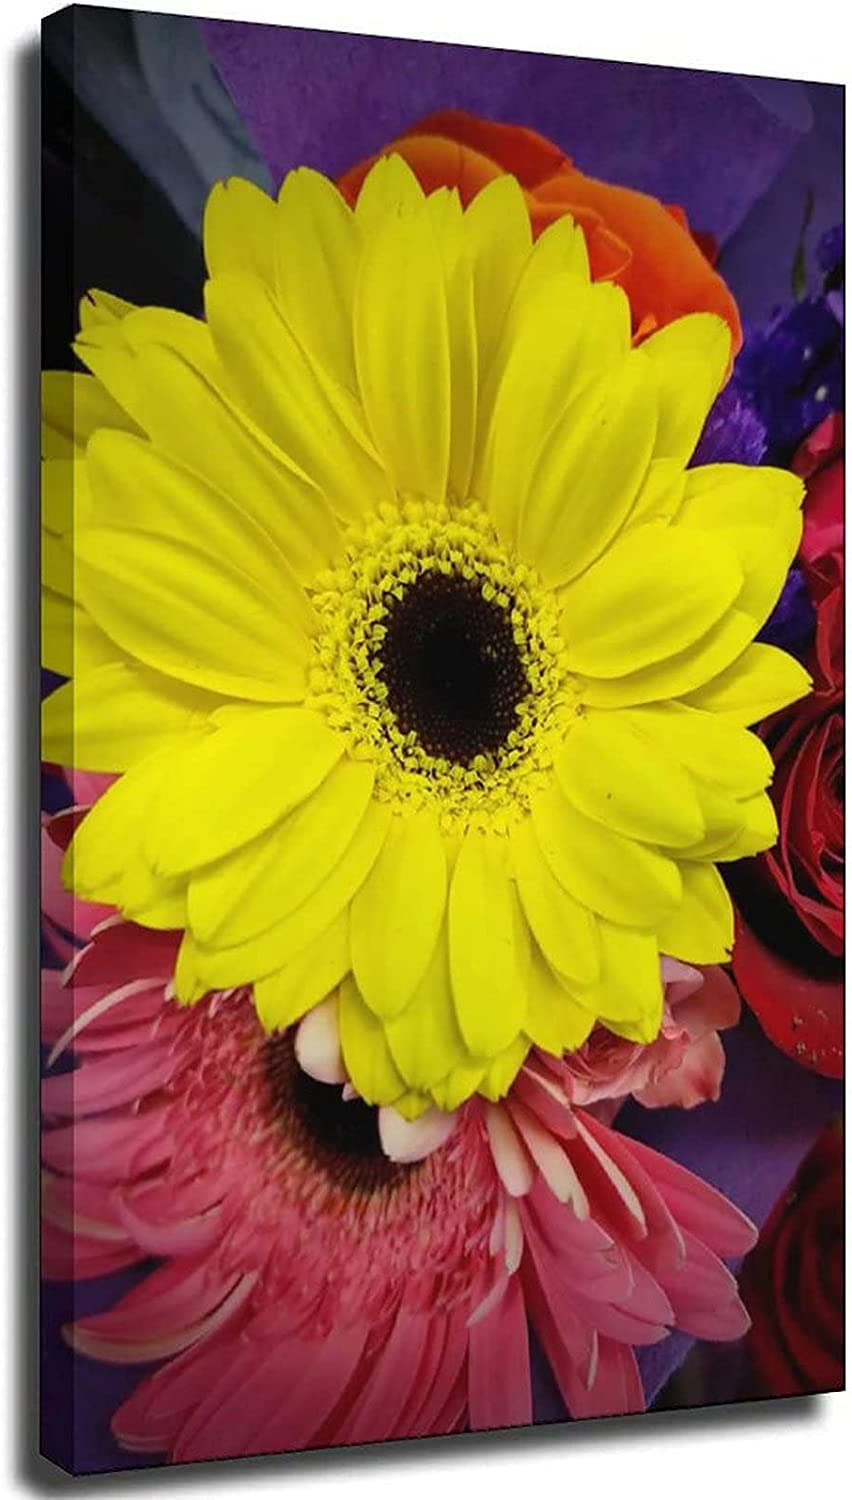 Friendship Flowers Abstract Canvas Wall for Room Mode Living Sales Art 25% OFF